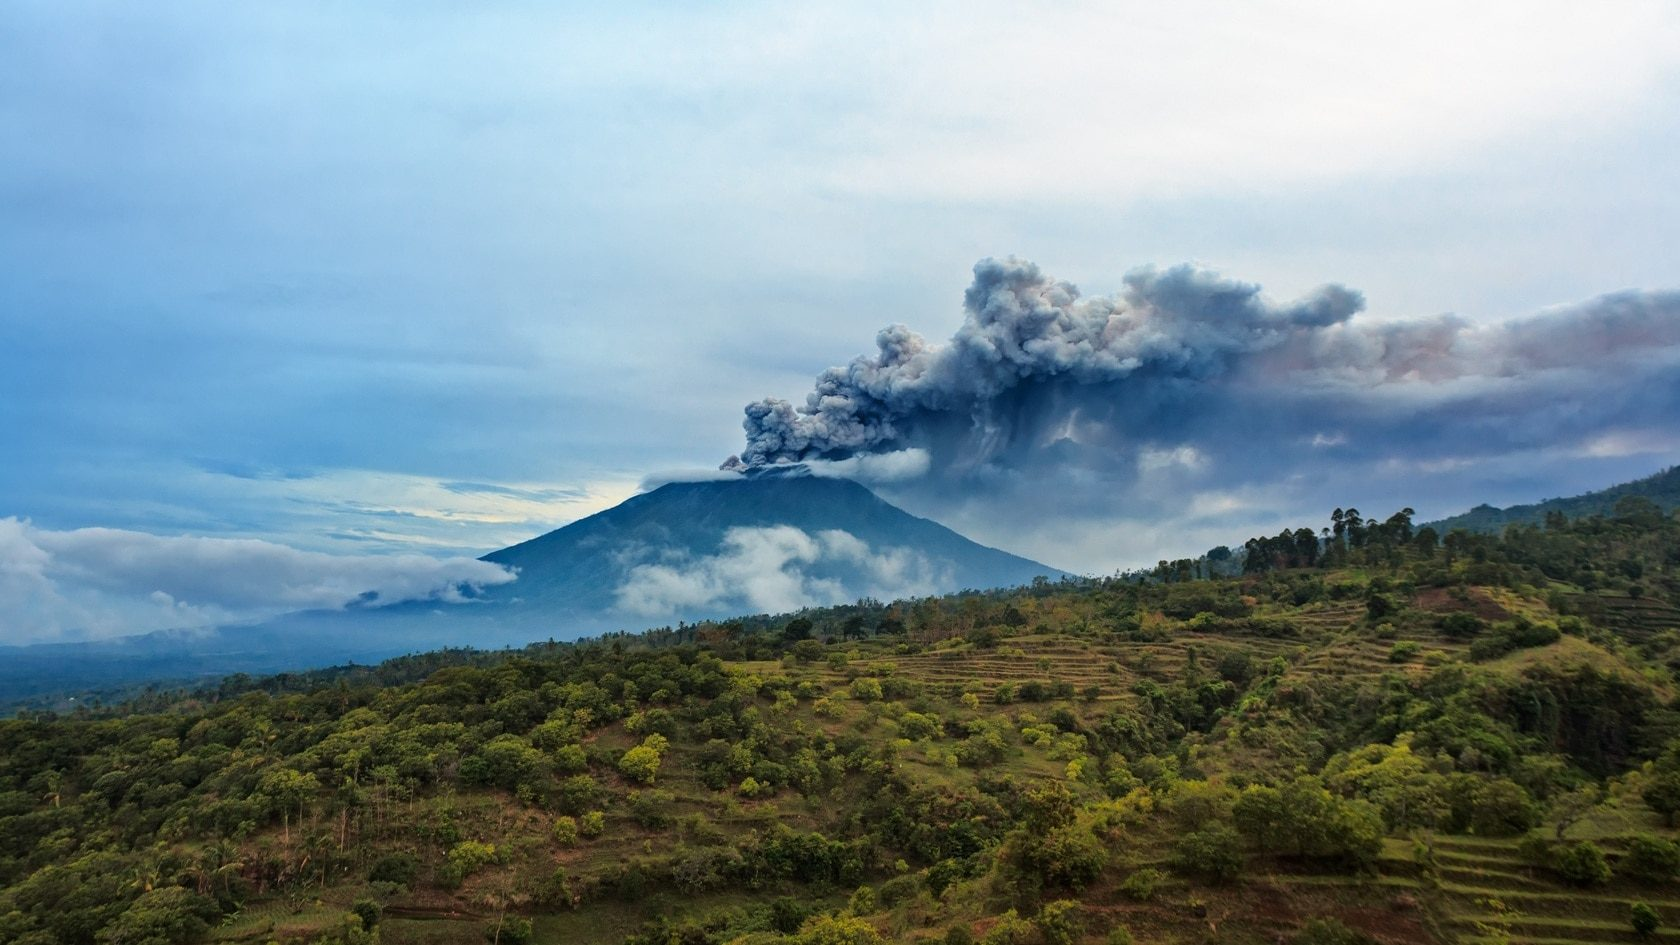 A Tale of Two Bali's – Tourism under the Volcano | The Thaiger